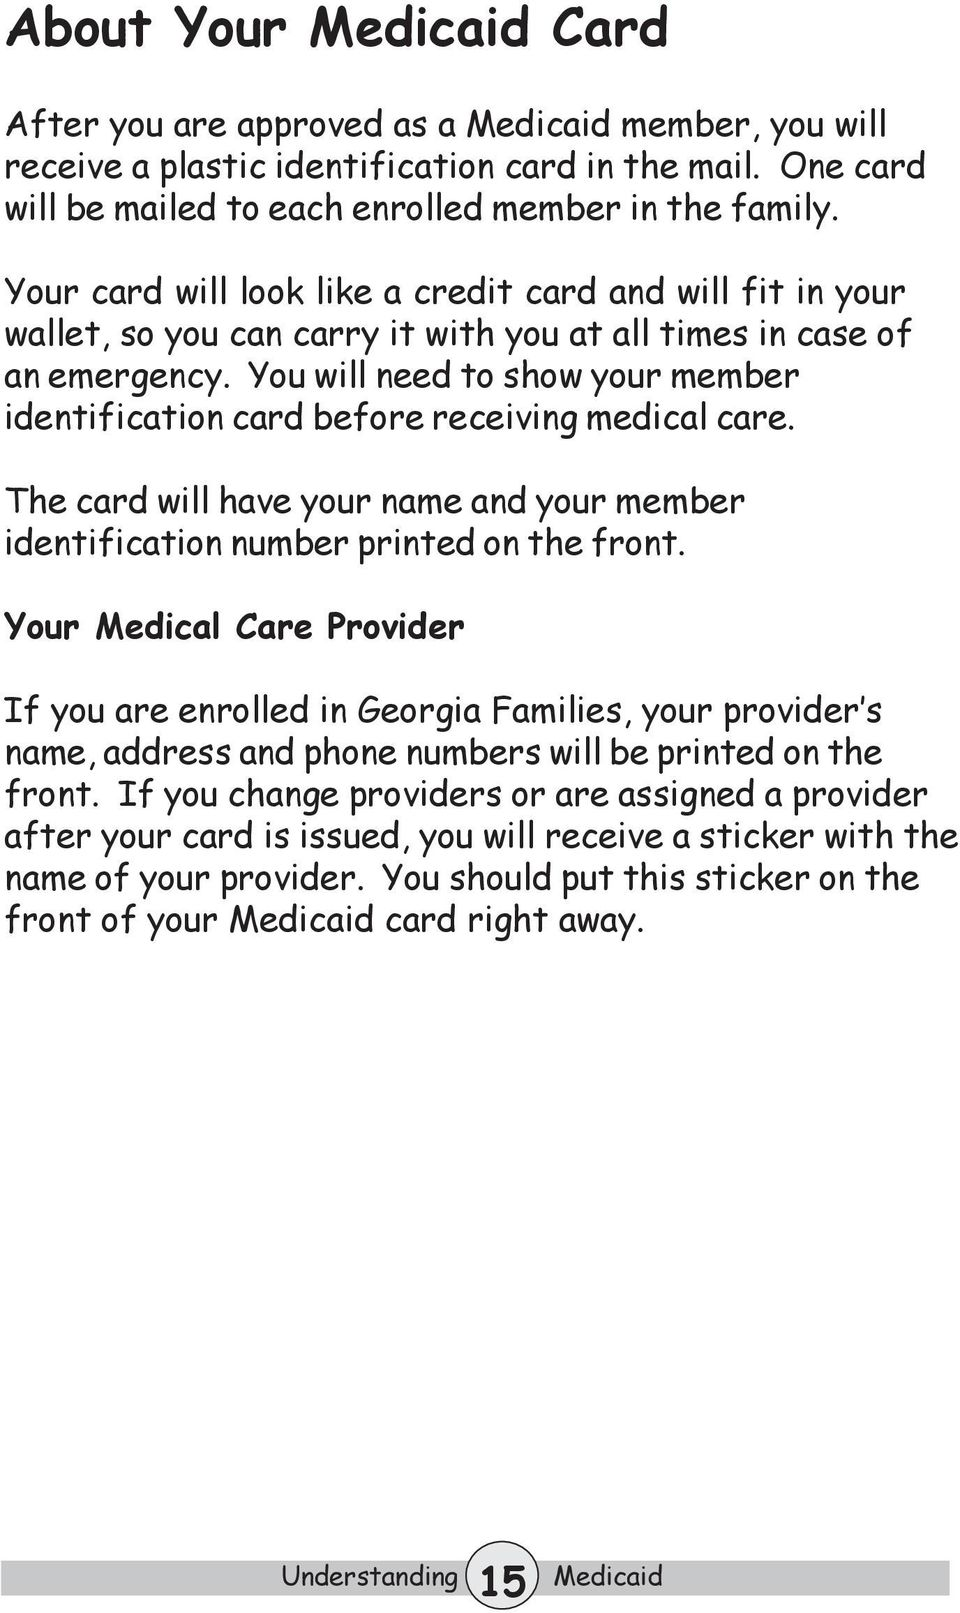 You will need to show your member identification card before receiving medical care. The card will have your name and your member identification number printed on the front.